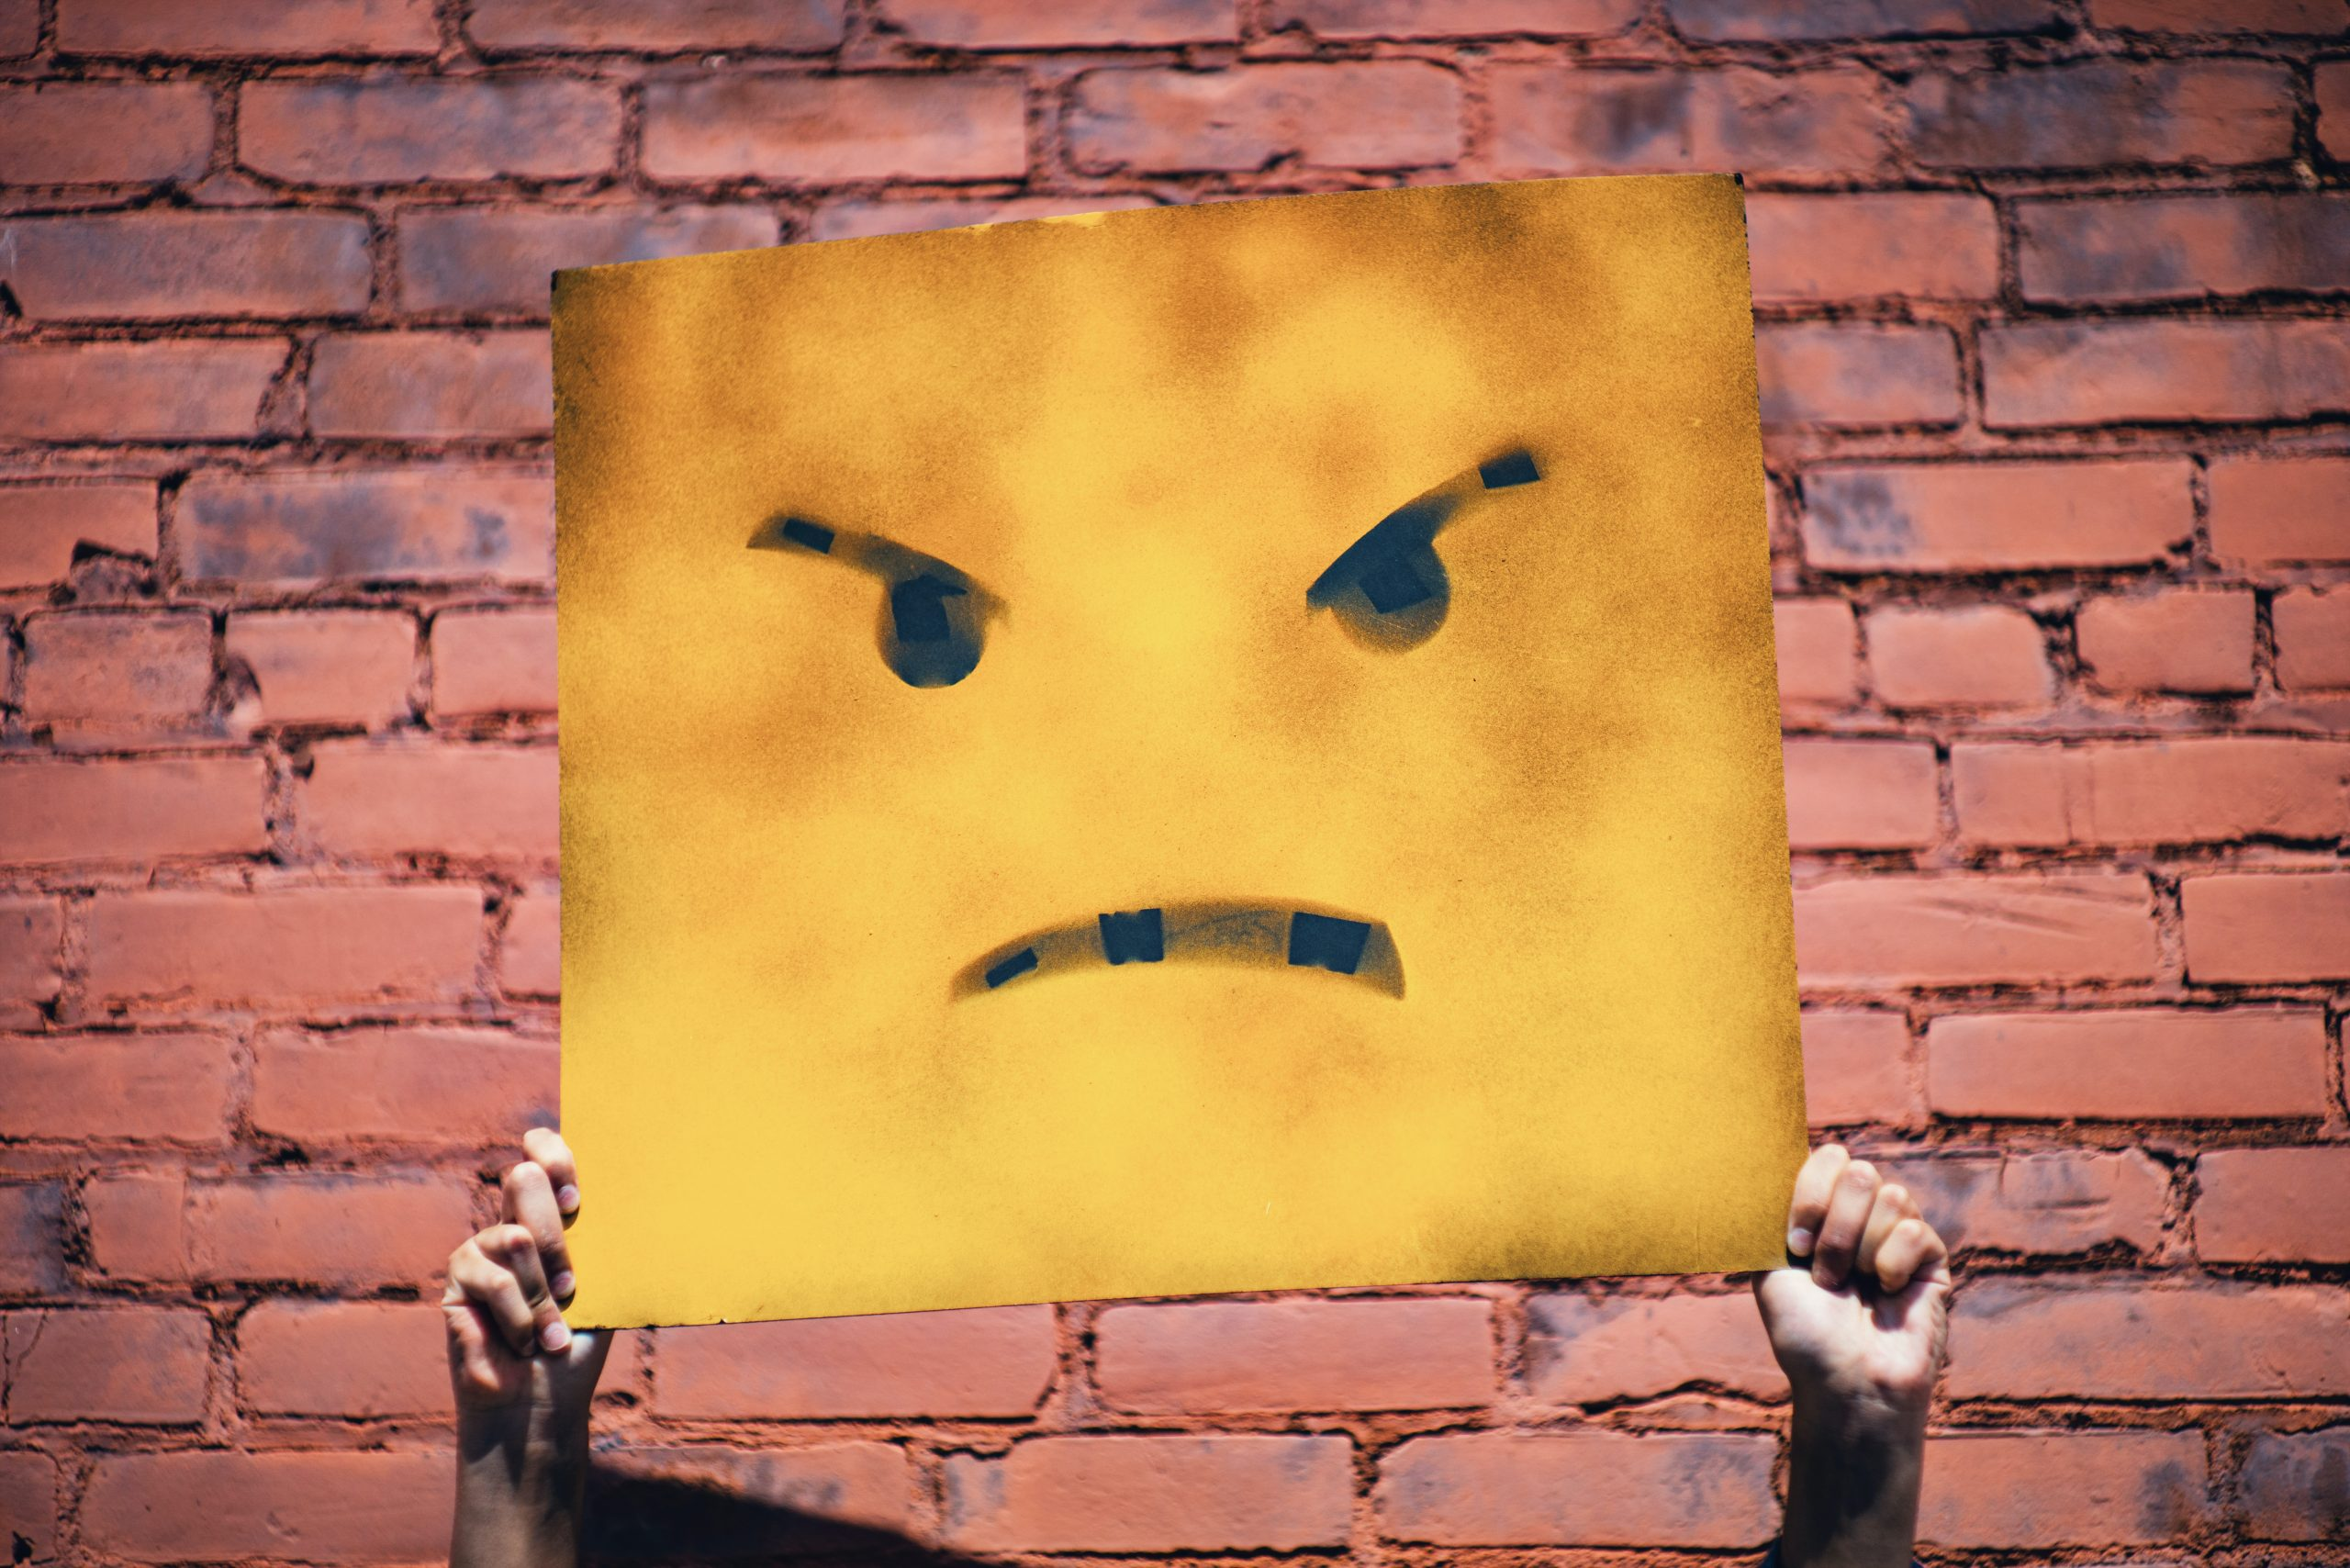 Hands holding sign with angry face on it